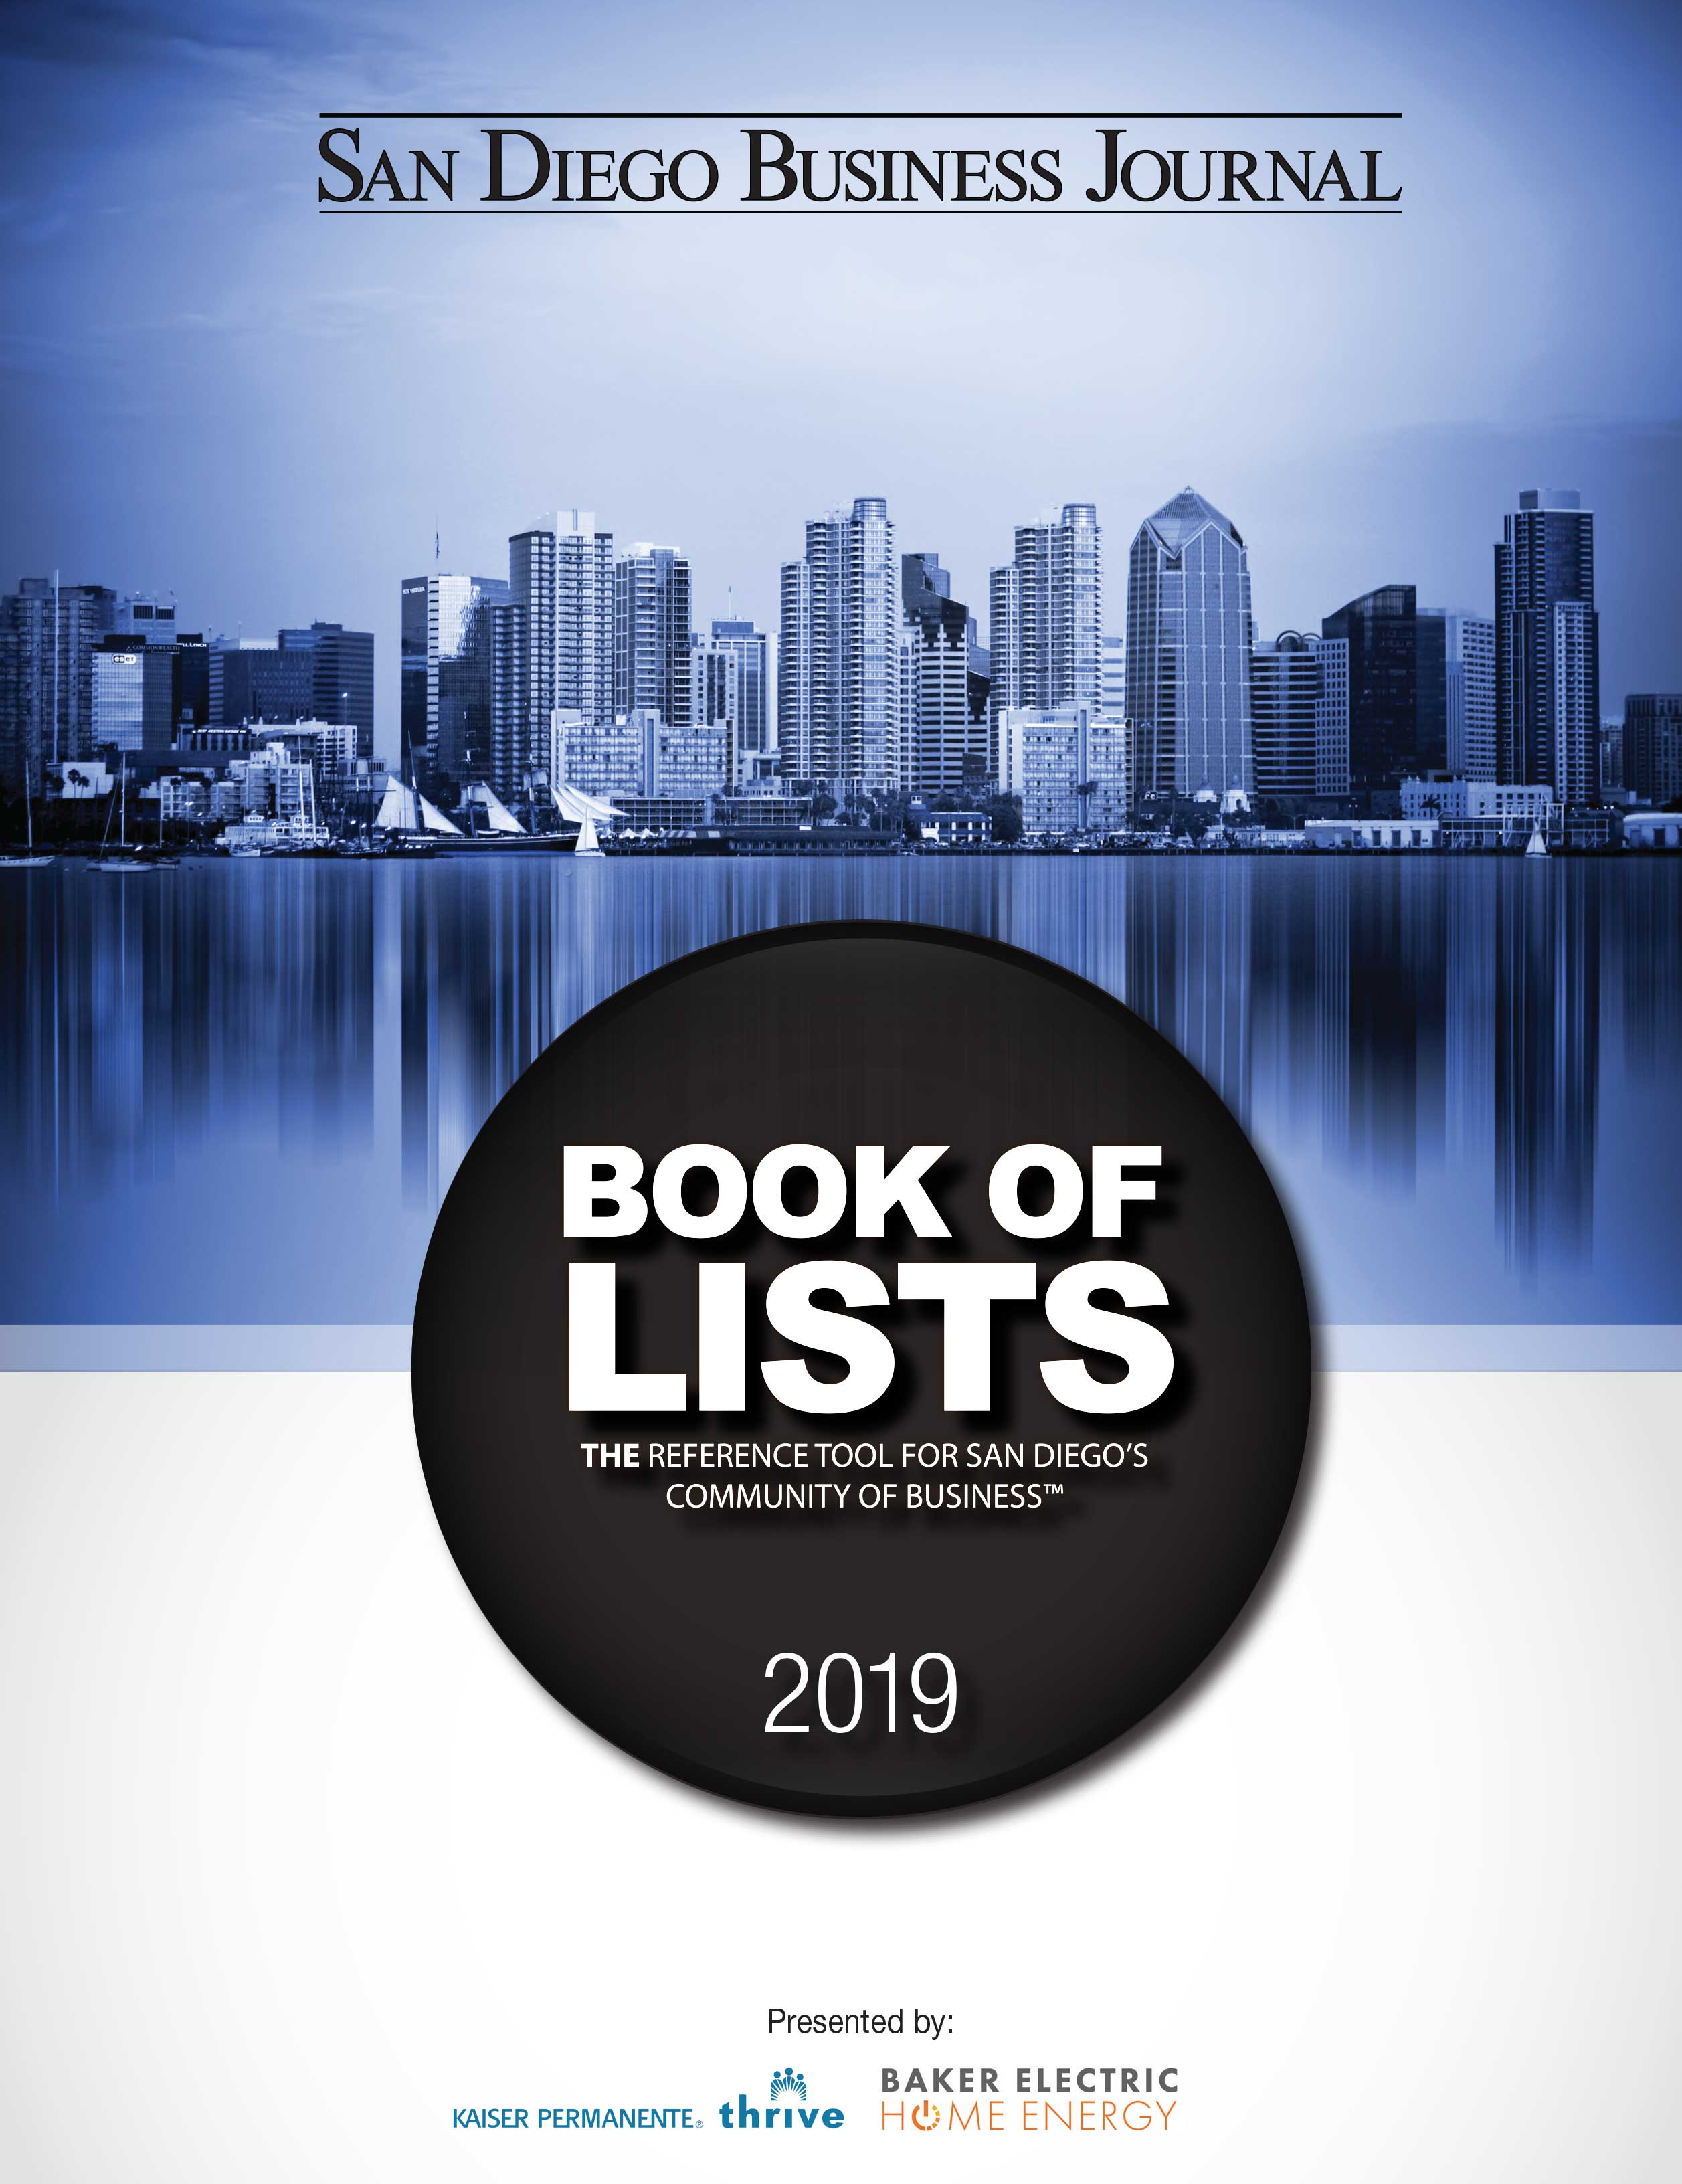 Veyo Makes SDBJ 2019 Book of Lists